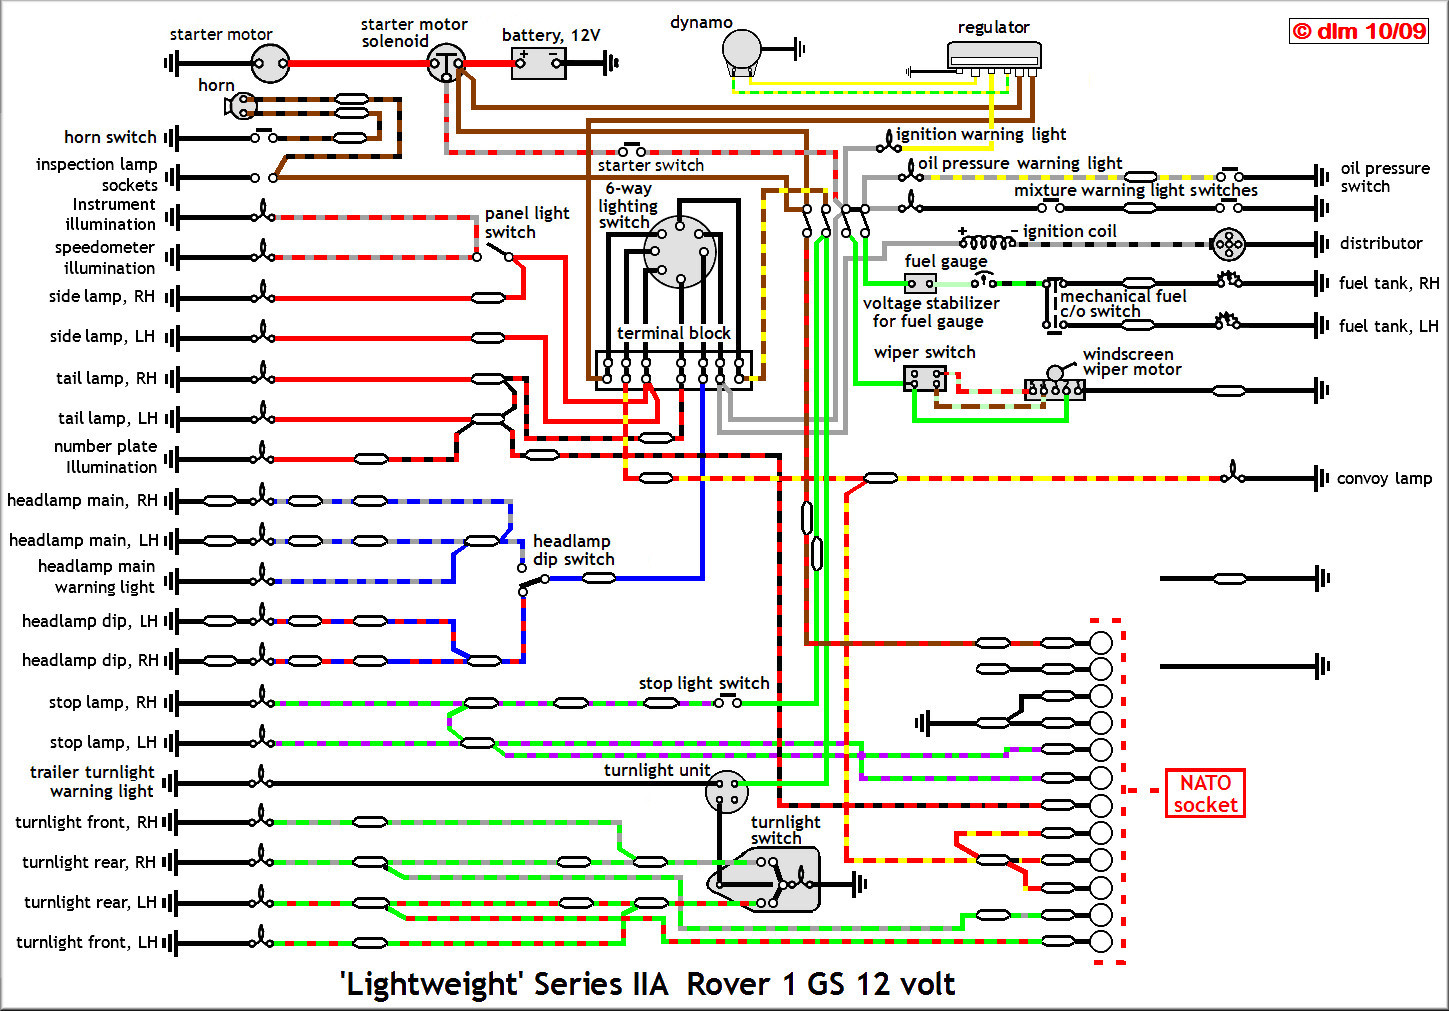 Land Rover Discovery 1 Electrical Wiring Diagram : Land rover discovery wiring diagram